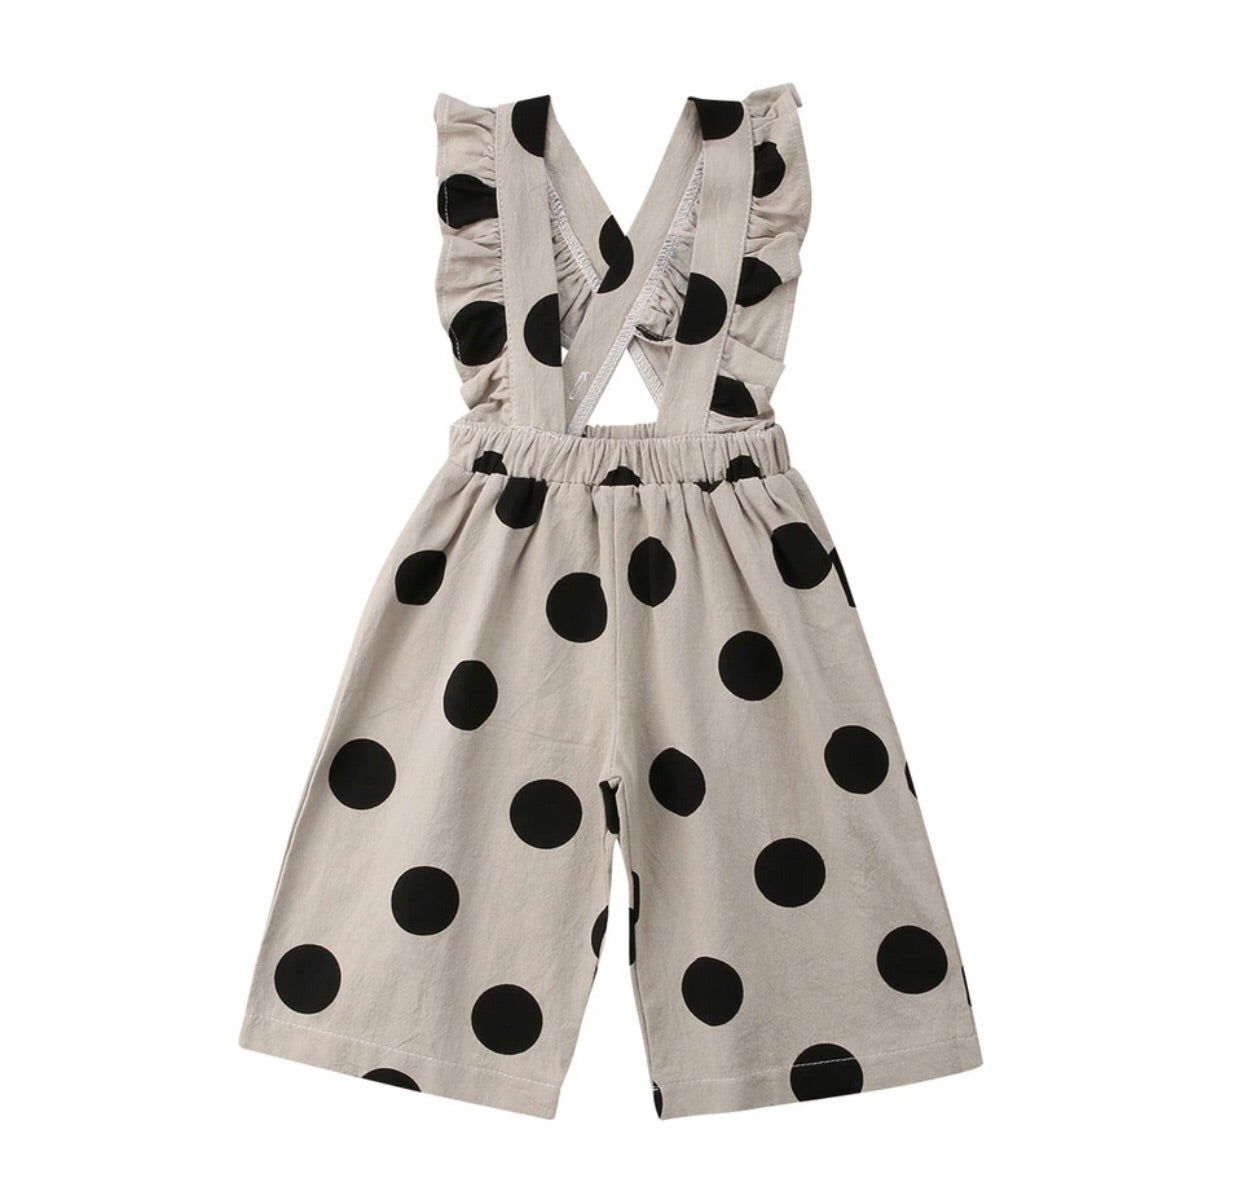 The Polka Dot Jumpsuit